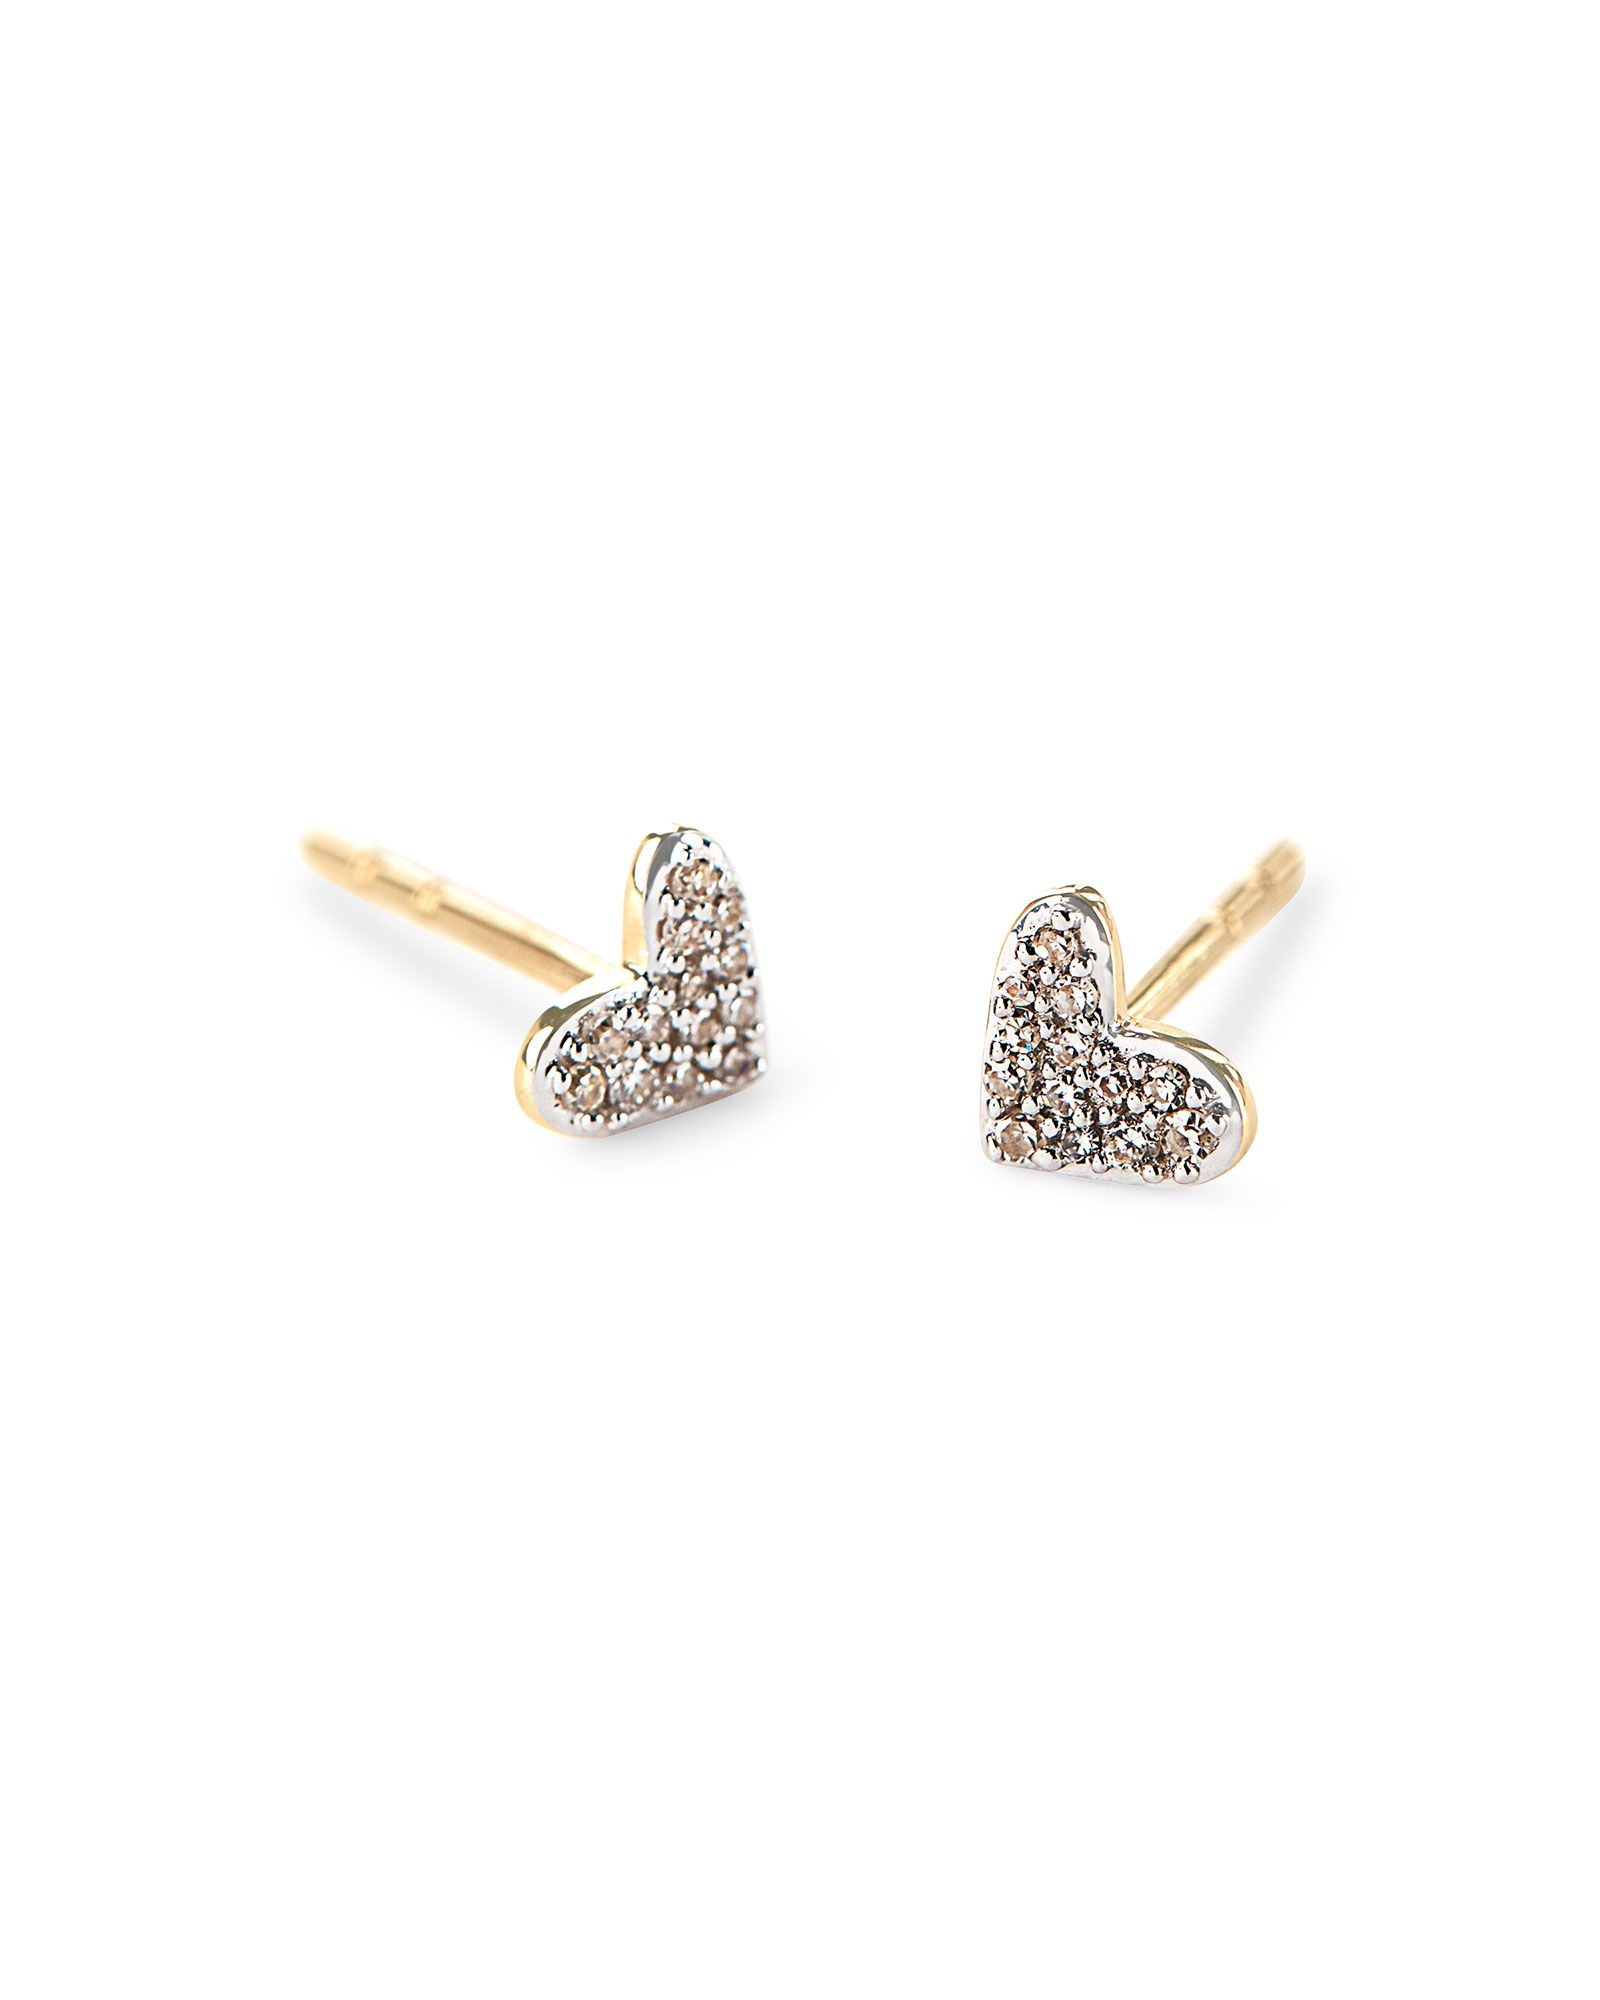 Gifts For Her Heart 14k Yellow Gold Stud Earrings In White Diamonds Gold Earrings Studs 14k Yellow Gold Stud Earrings Yellow Gold Earrings Studs